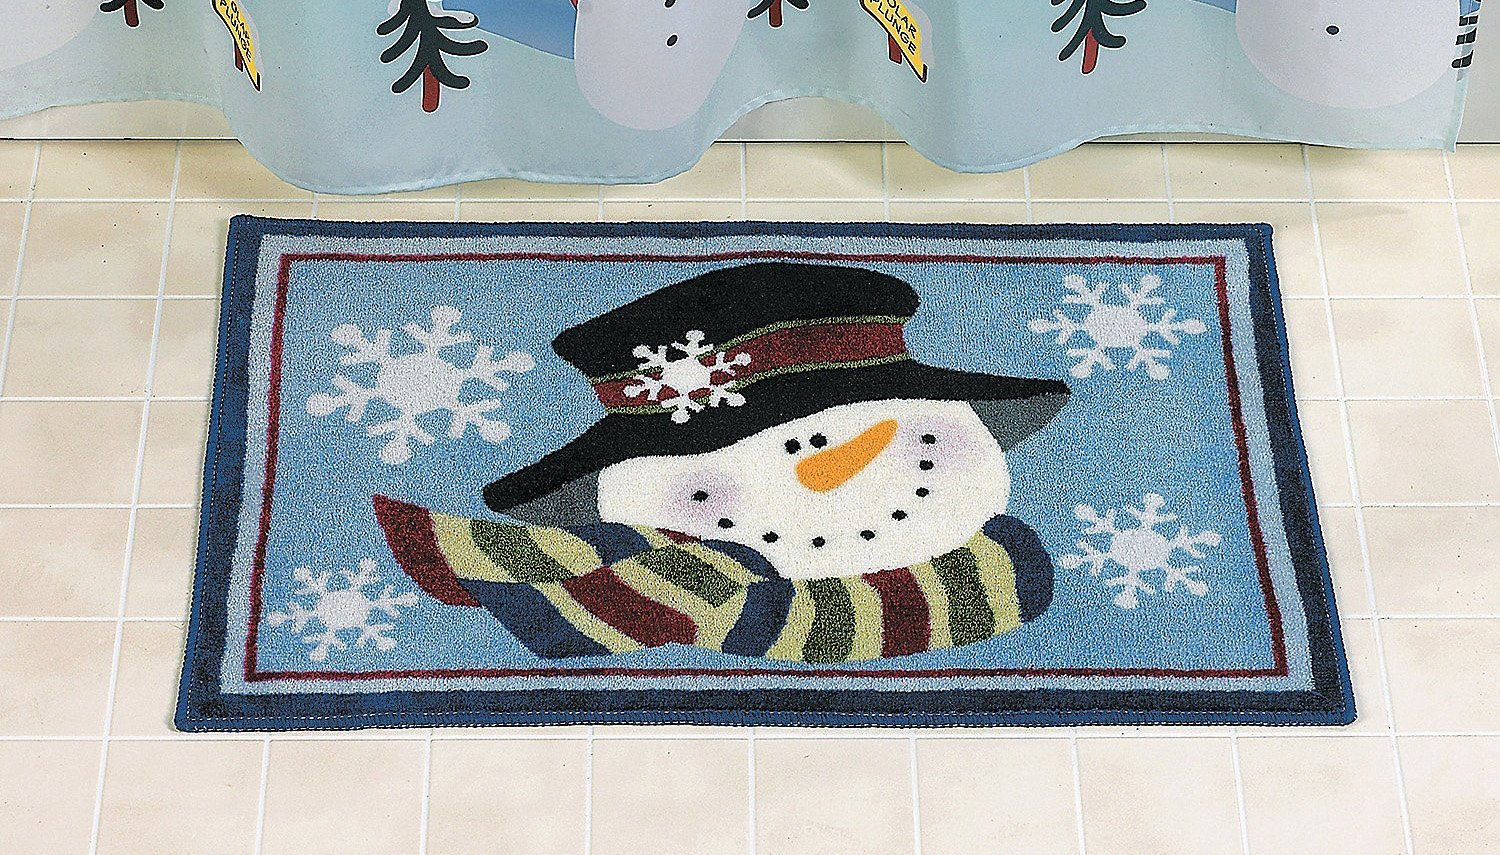 Snowman Bath Mat for Christmas